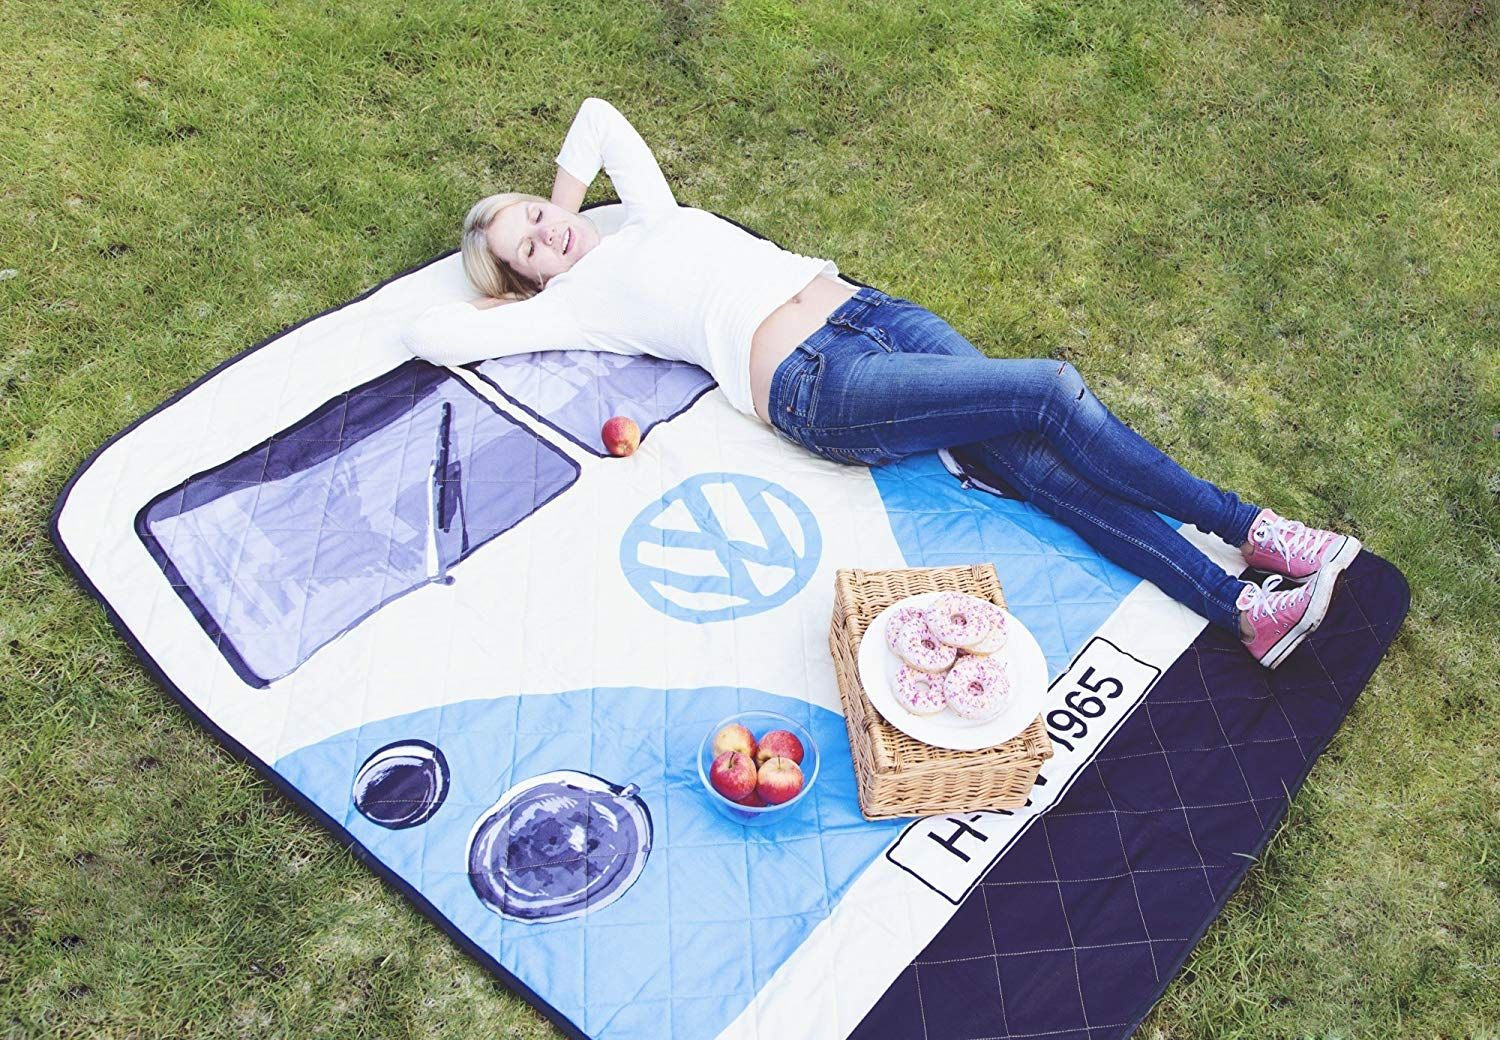 This Camper-Inspired Picnic Blanket Is the Ultimate Retro Accessory for Summer